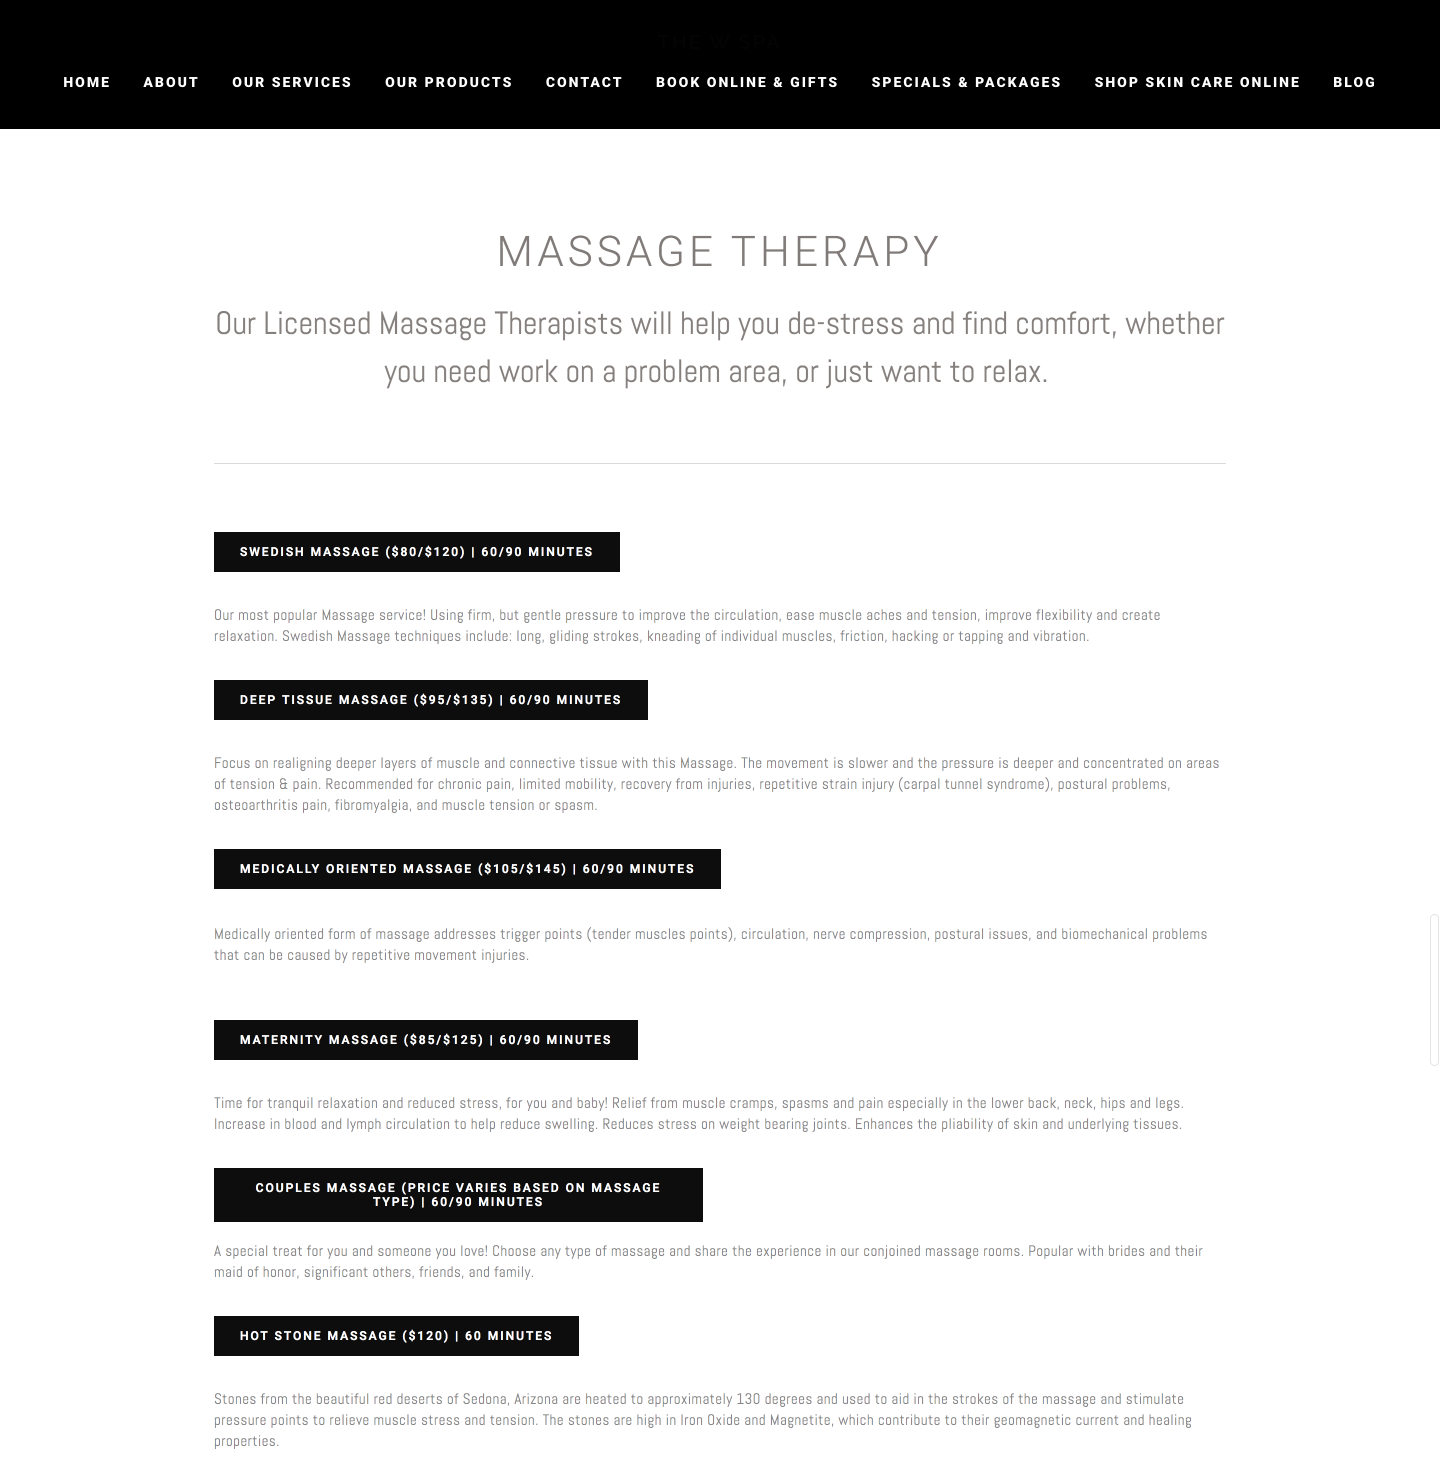 """The W Spa: Massage Therapy. """"Our Licensed Massage Therapists will help you de-stress and find comfort, whether you need to work on a problem area or just want to relax."""" Page lists names and prices of different massage services with service descriptions."""